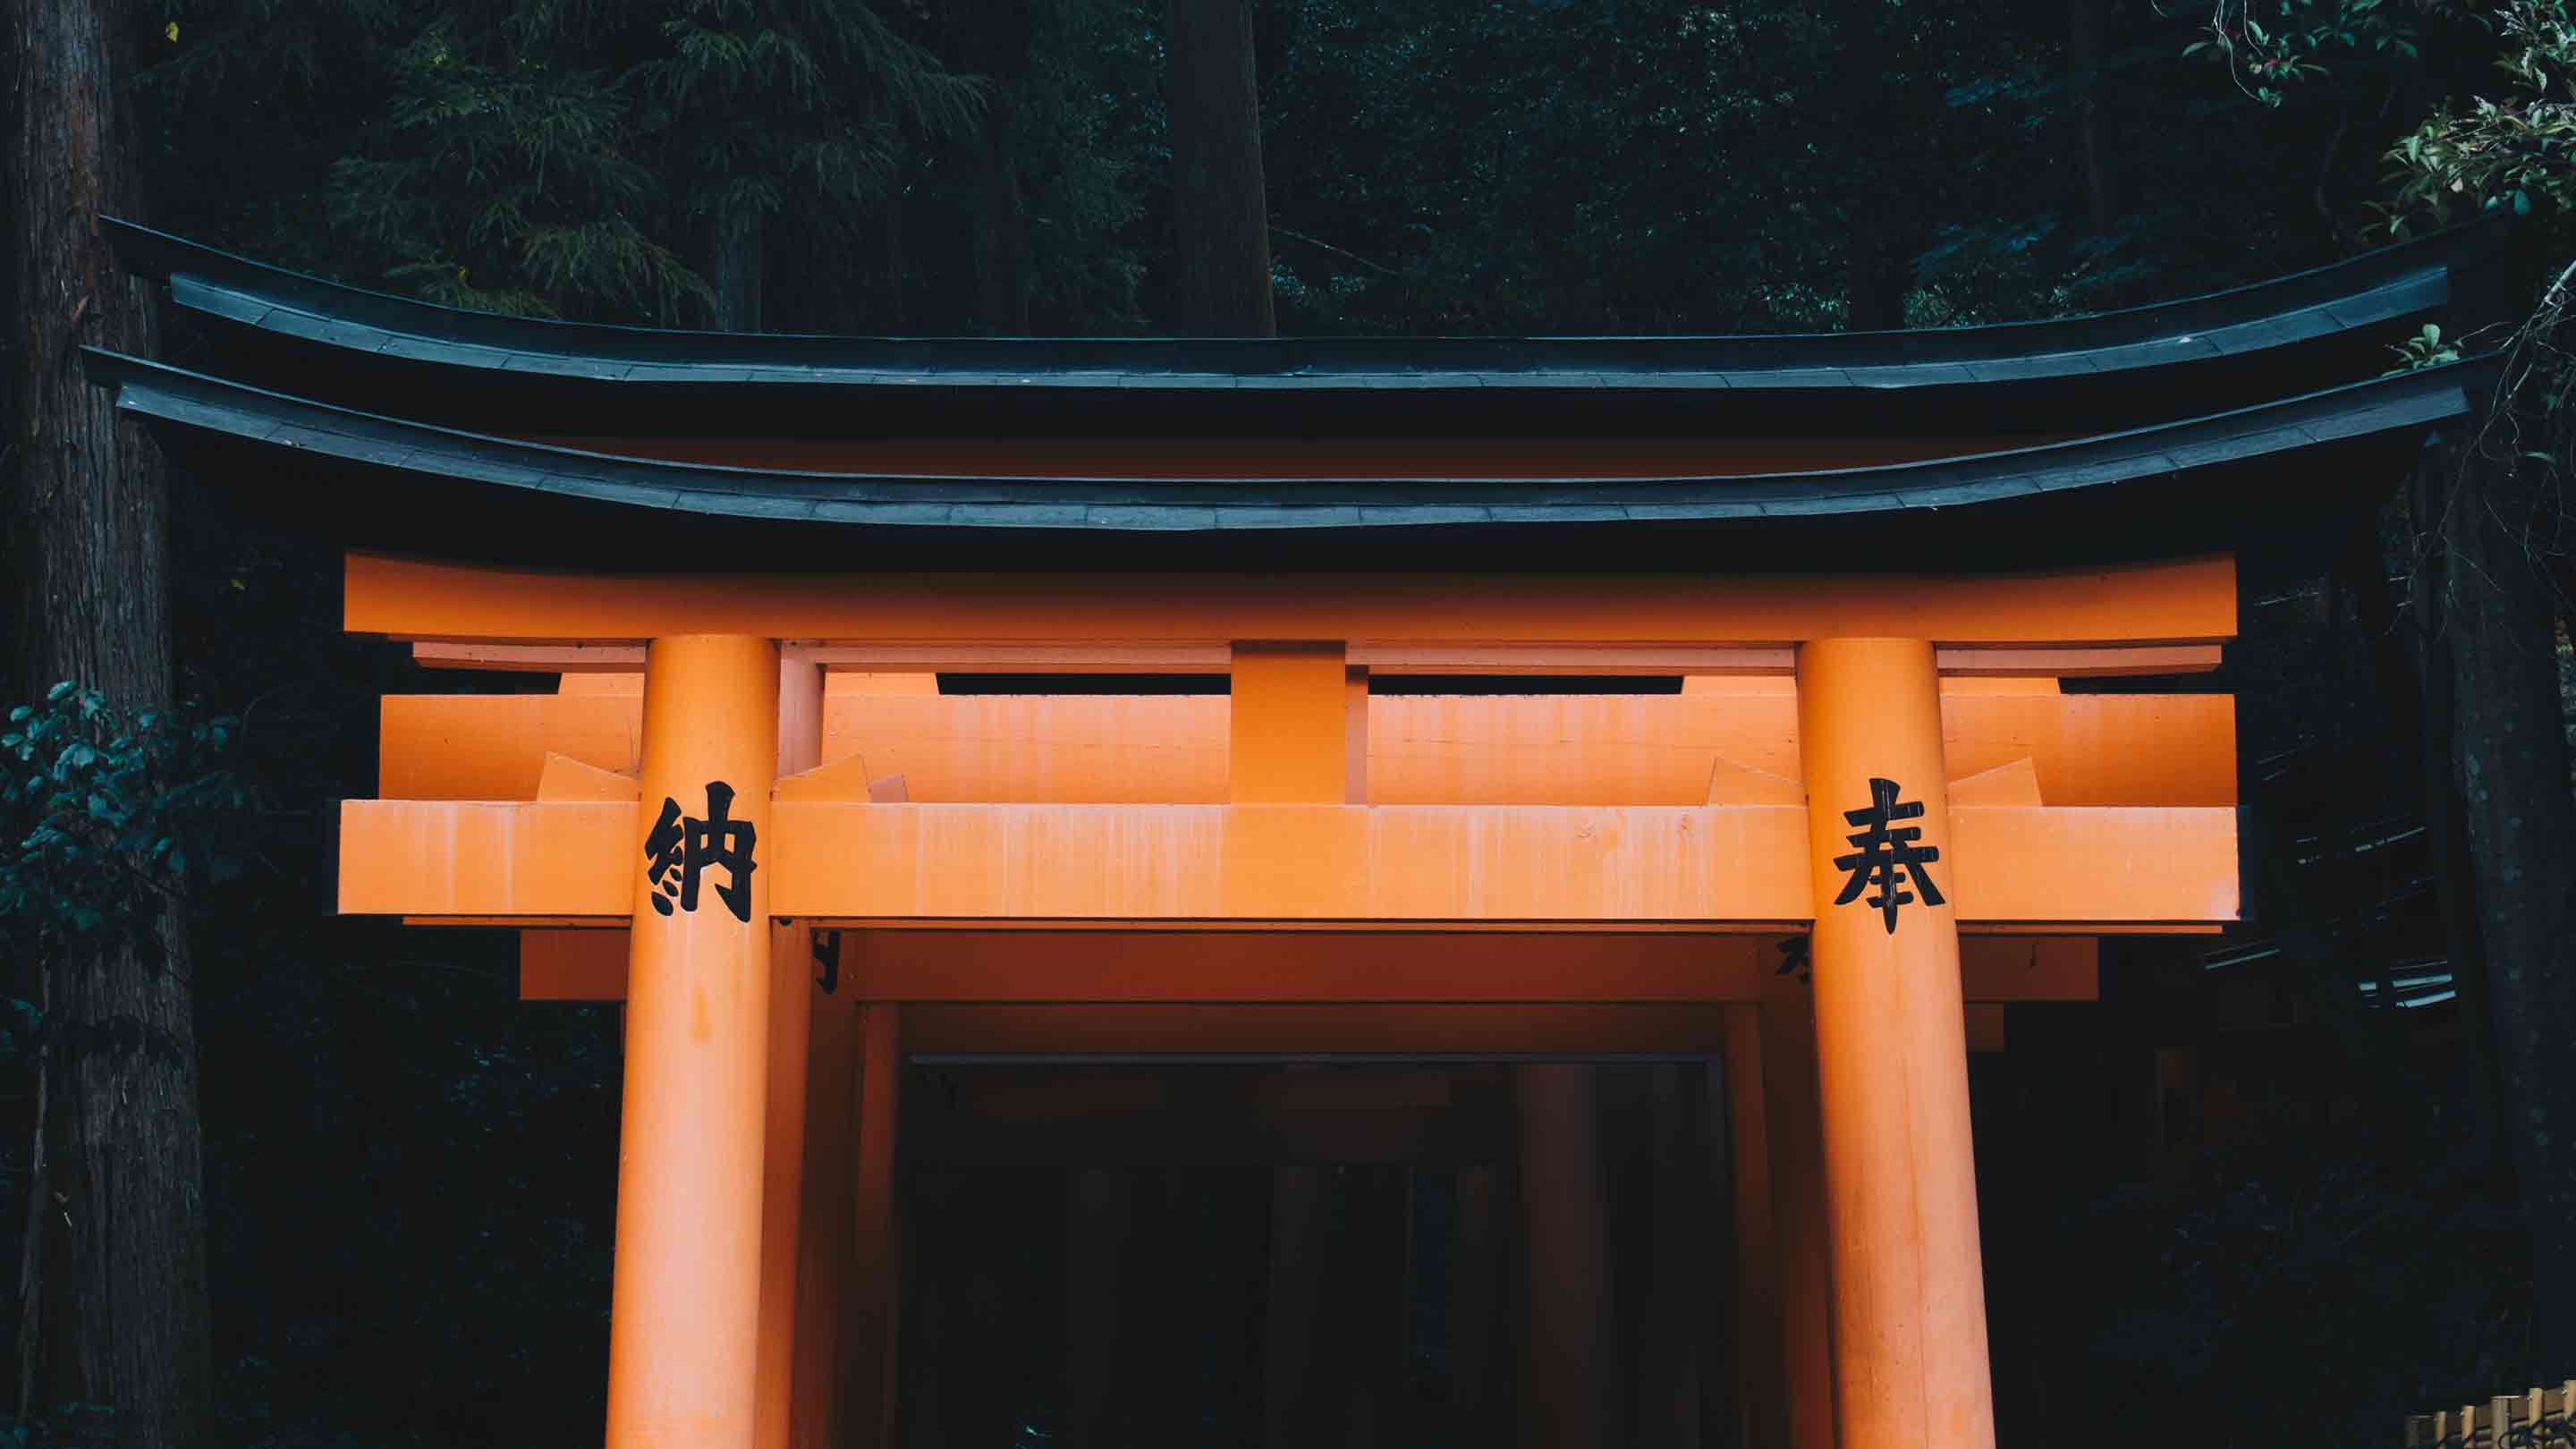 A picture of a Japanese torii gate.